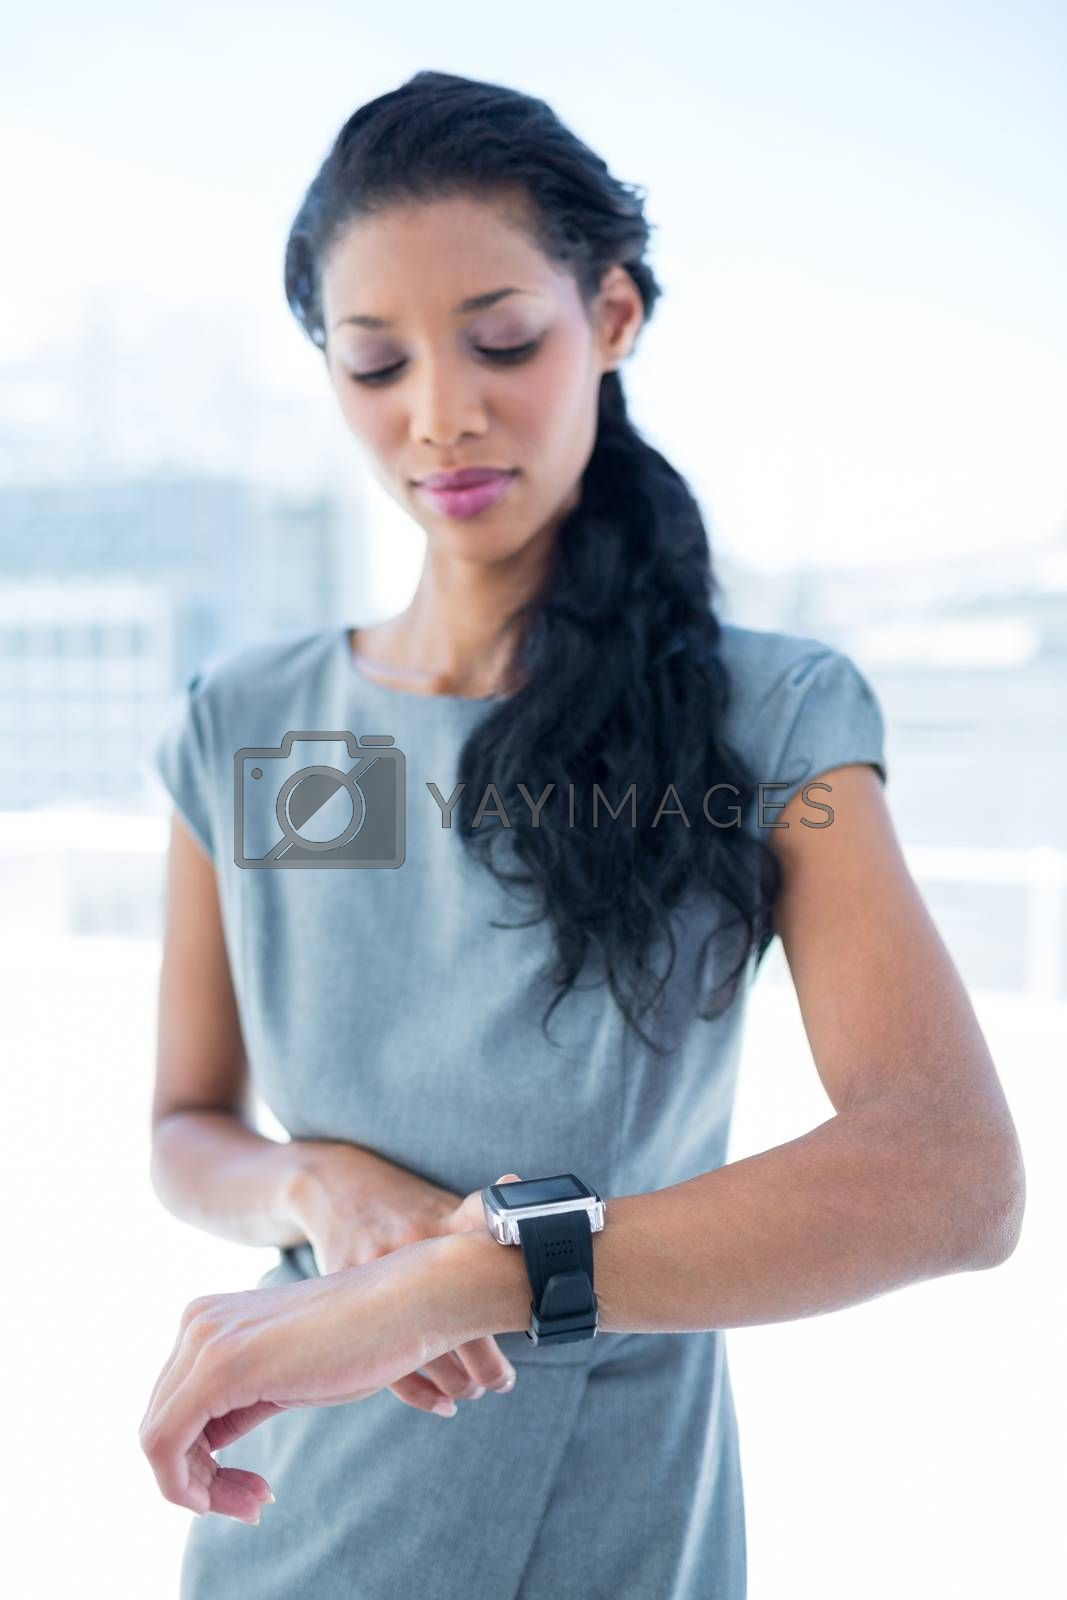 Royalty free image of A businesswoman using her smartwatch by Wavebreakmedia